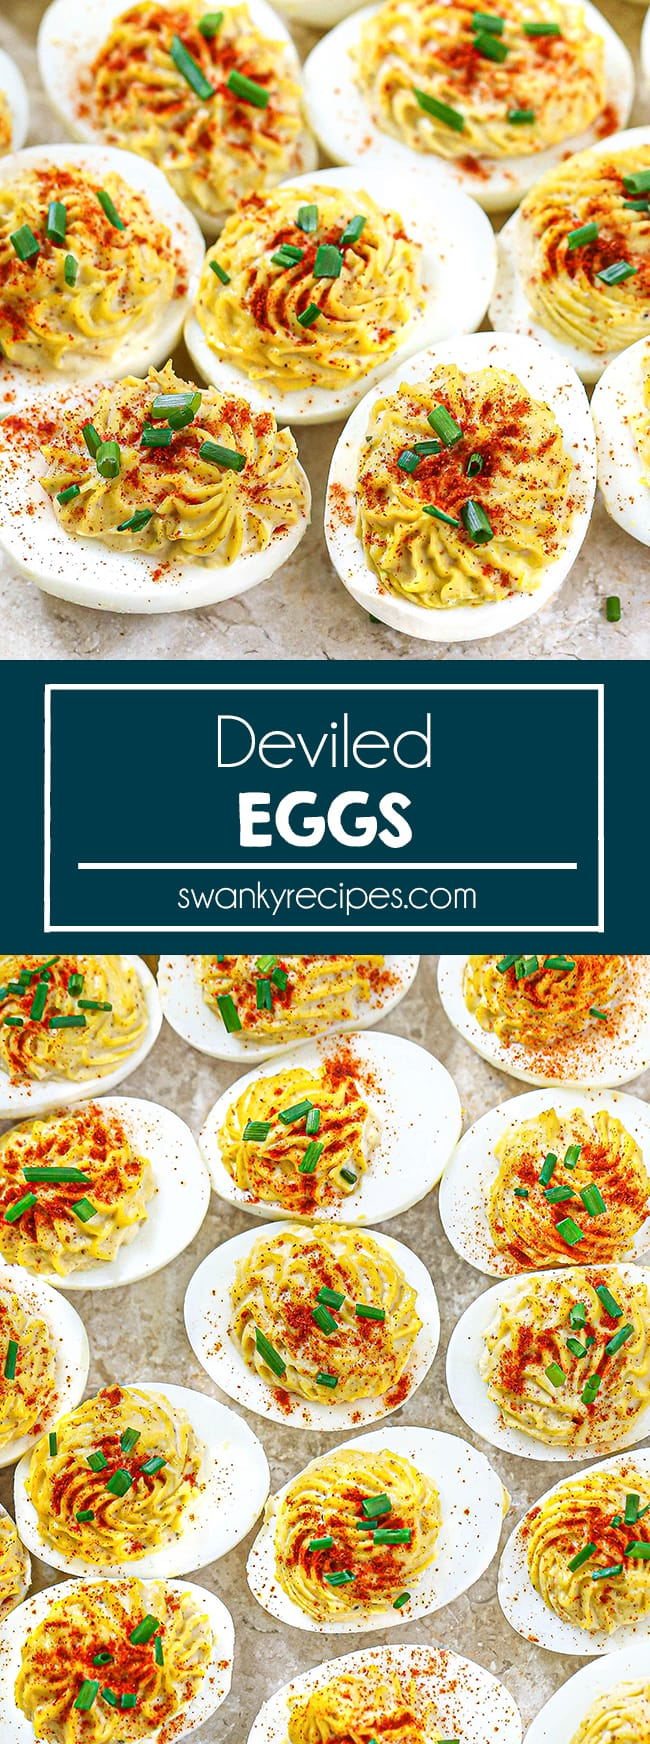 Deviled Eggs - Deviled eggs on a marble pastry board. Egg whites cut in half lengthwise and filled with a delicious creamy filling. Topped with paprika and chives. Text in center reads Deviled Eggs. Second image is an overhead view of deviled eggs in a few rows on a pastry board.